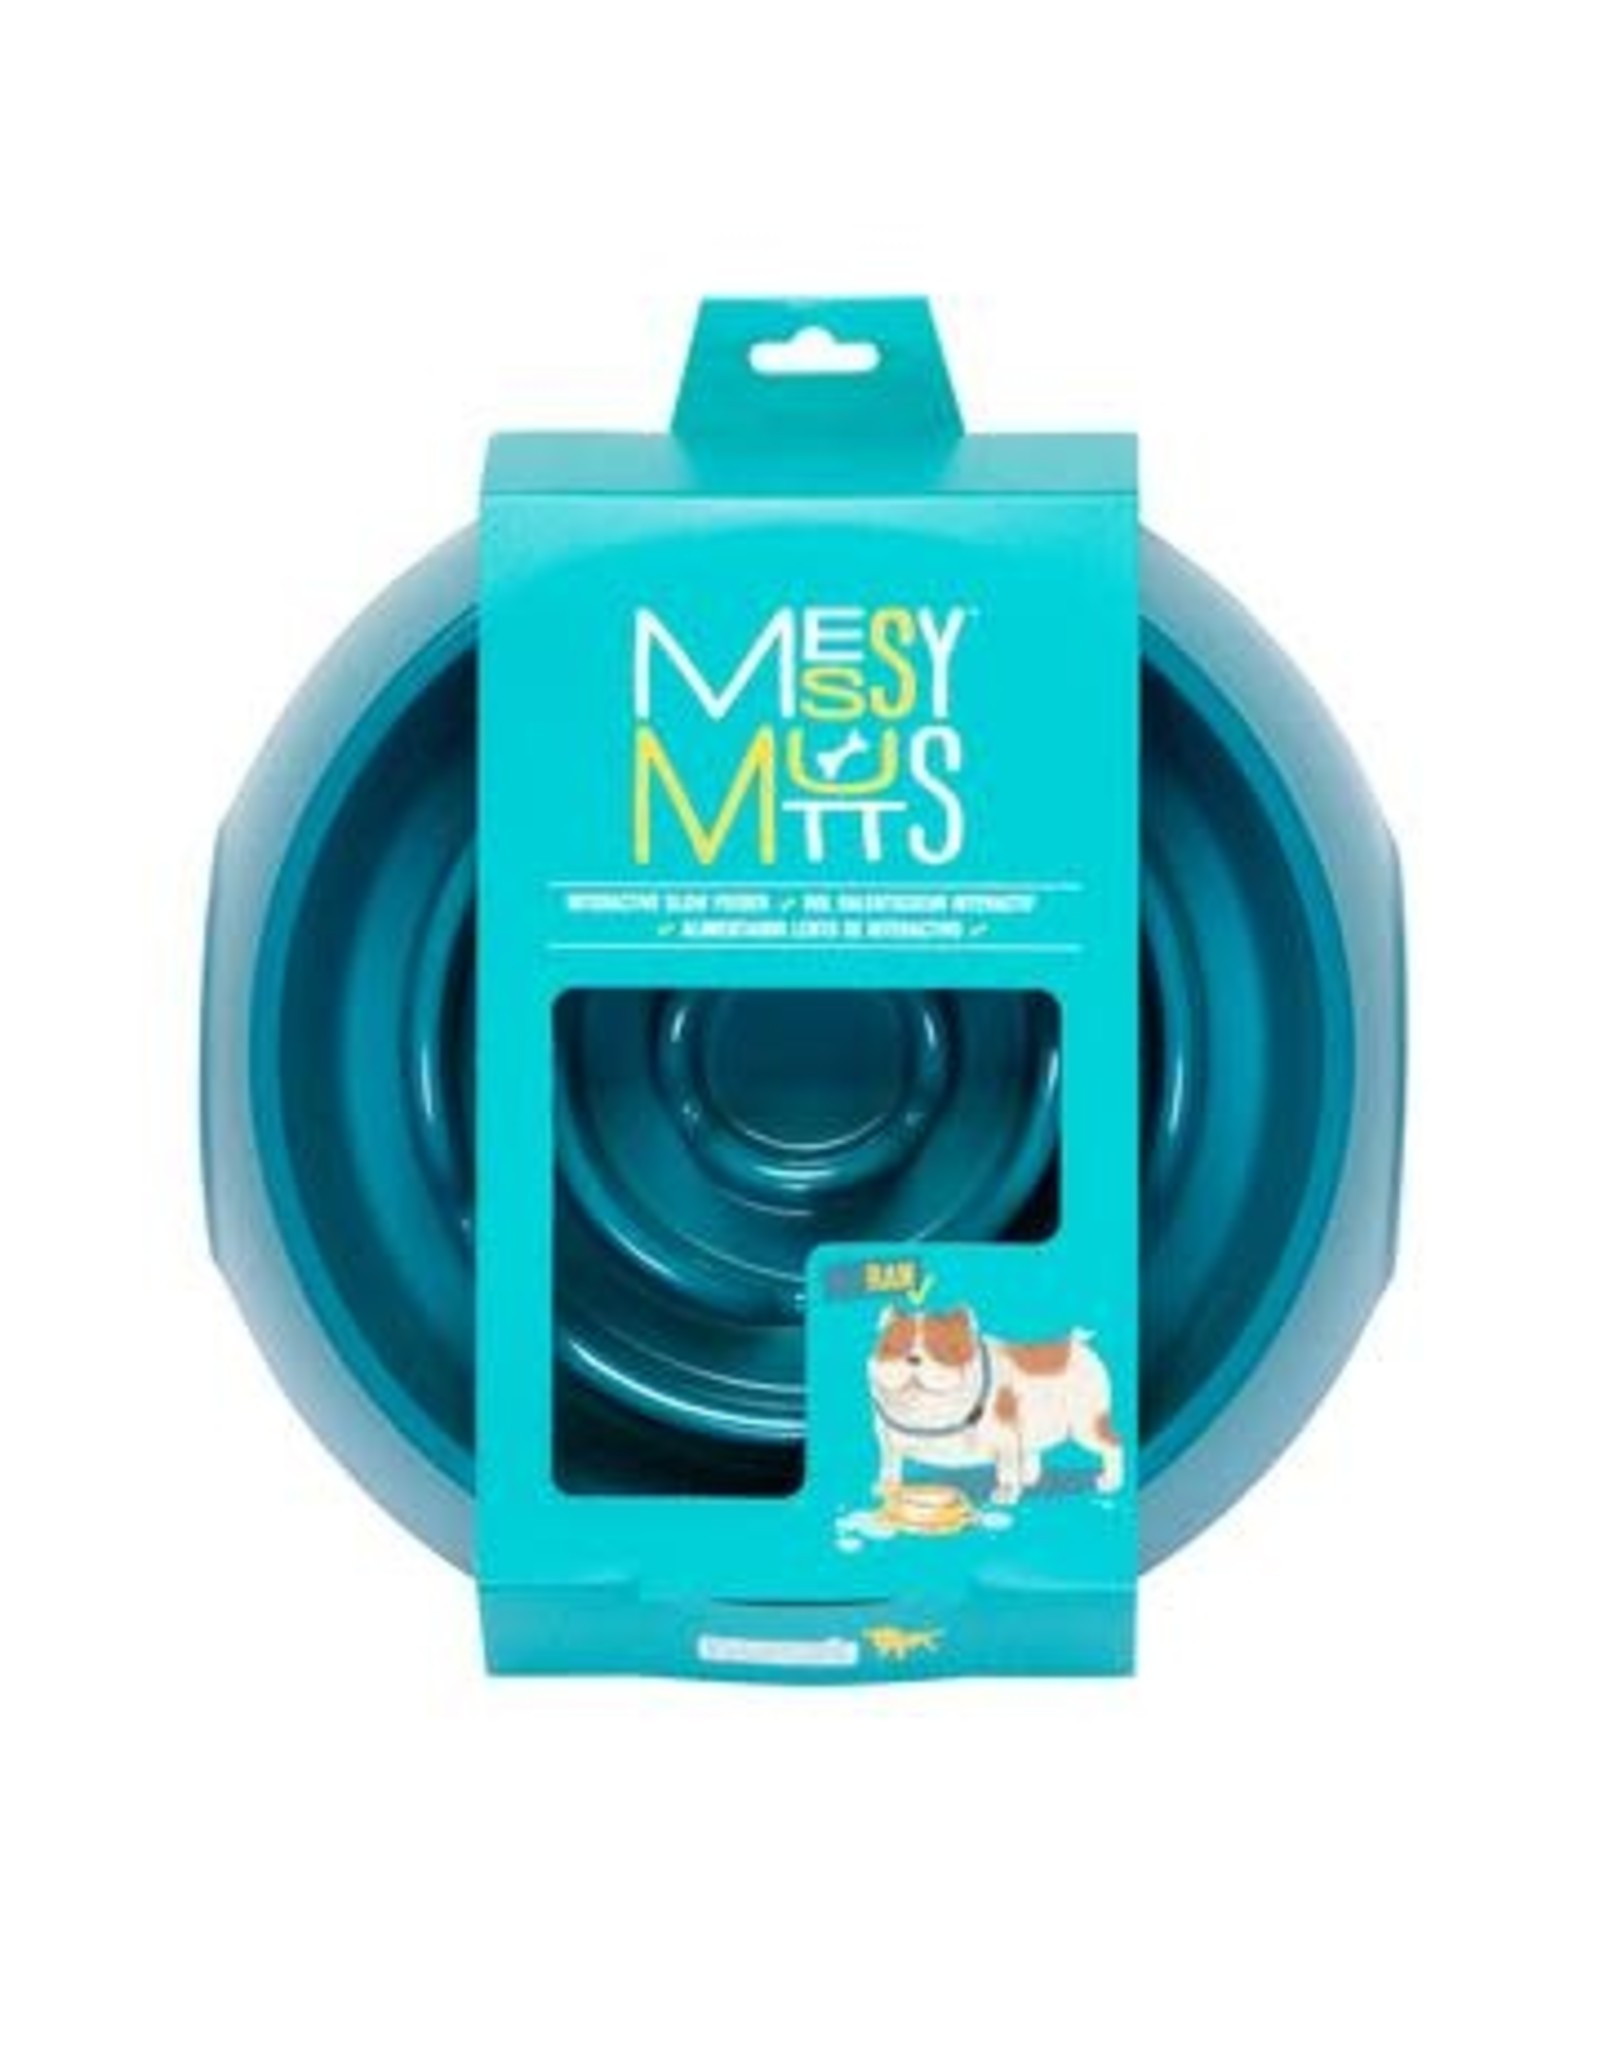 Messy Mutts Messy Mutts Interactive Slow Feeder Blue 3 Cup